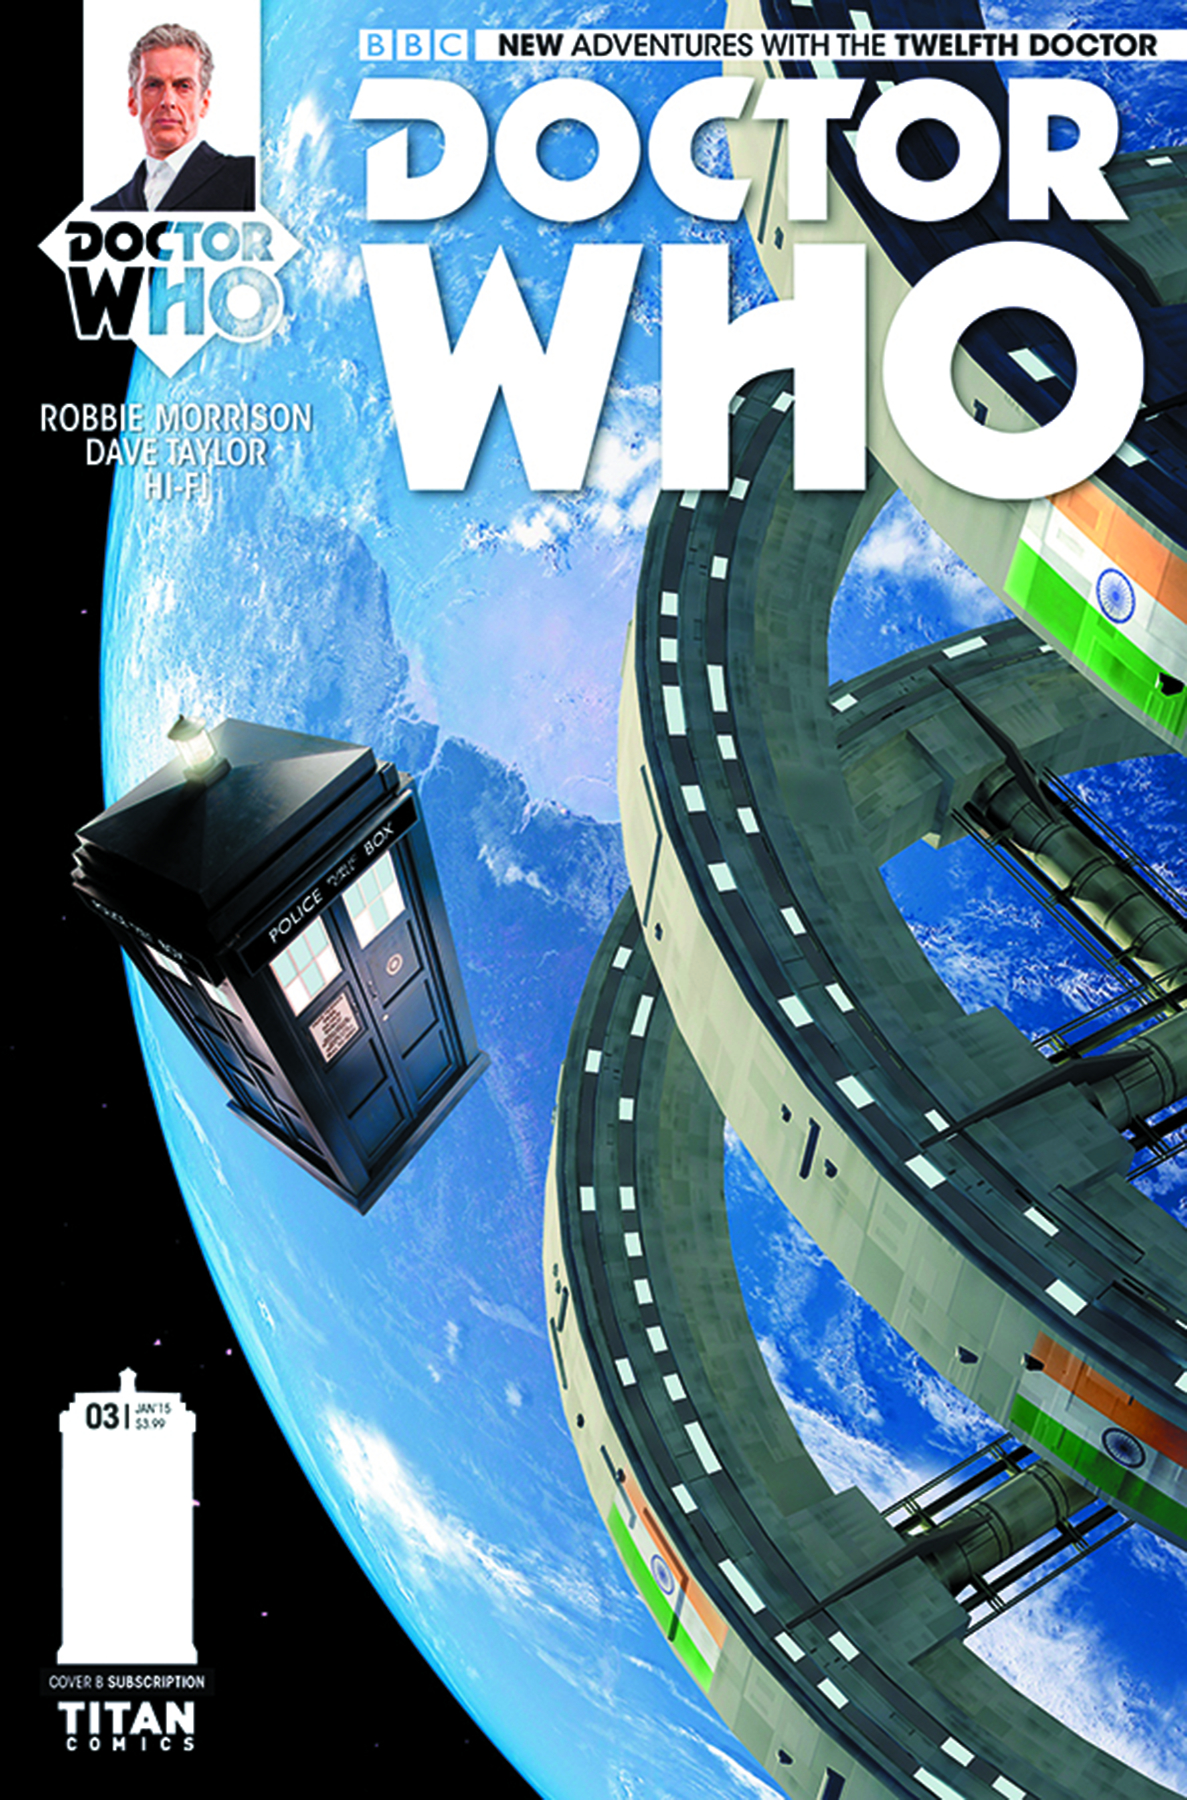 DOCTOR WHO 12TH #4 SUBSCRIPTION PHOTO